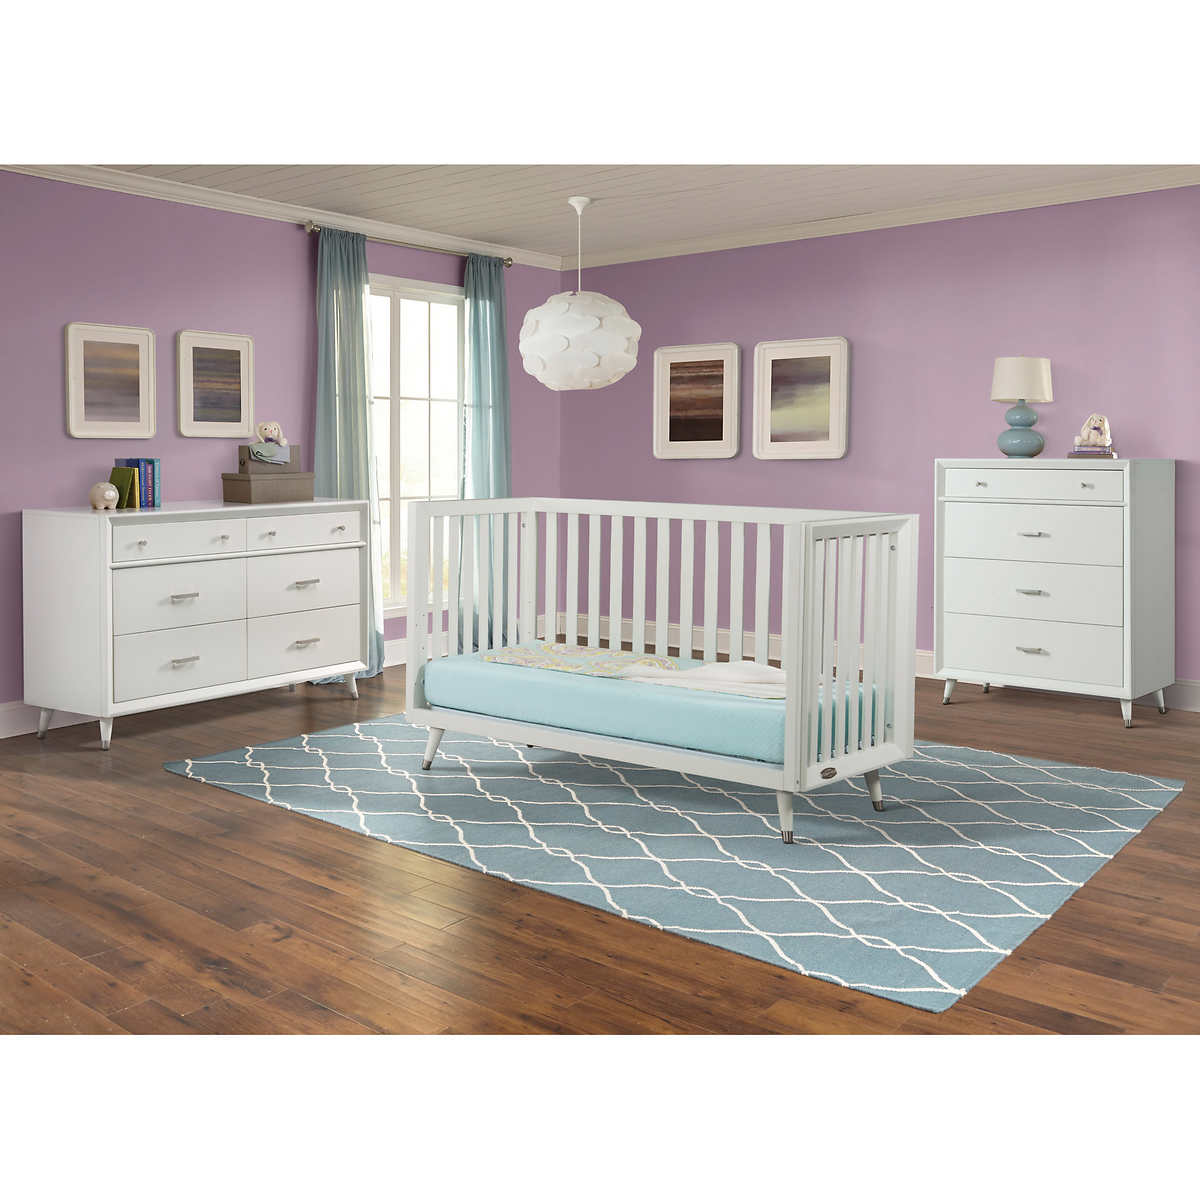 White plastic toddler bed costco - Tremont Euro Crib 4 Piece Nursery Collection White